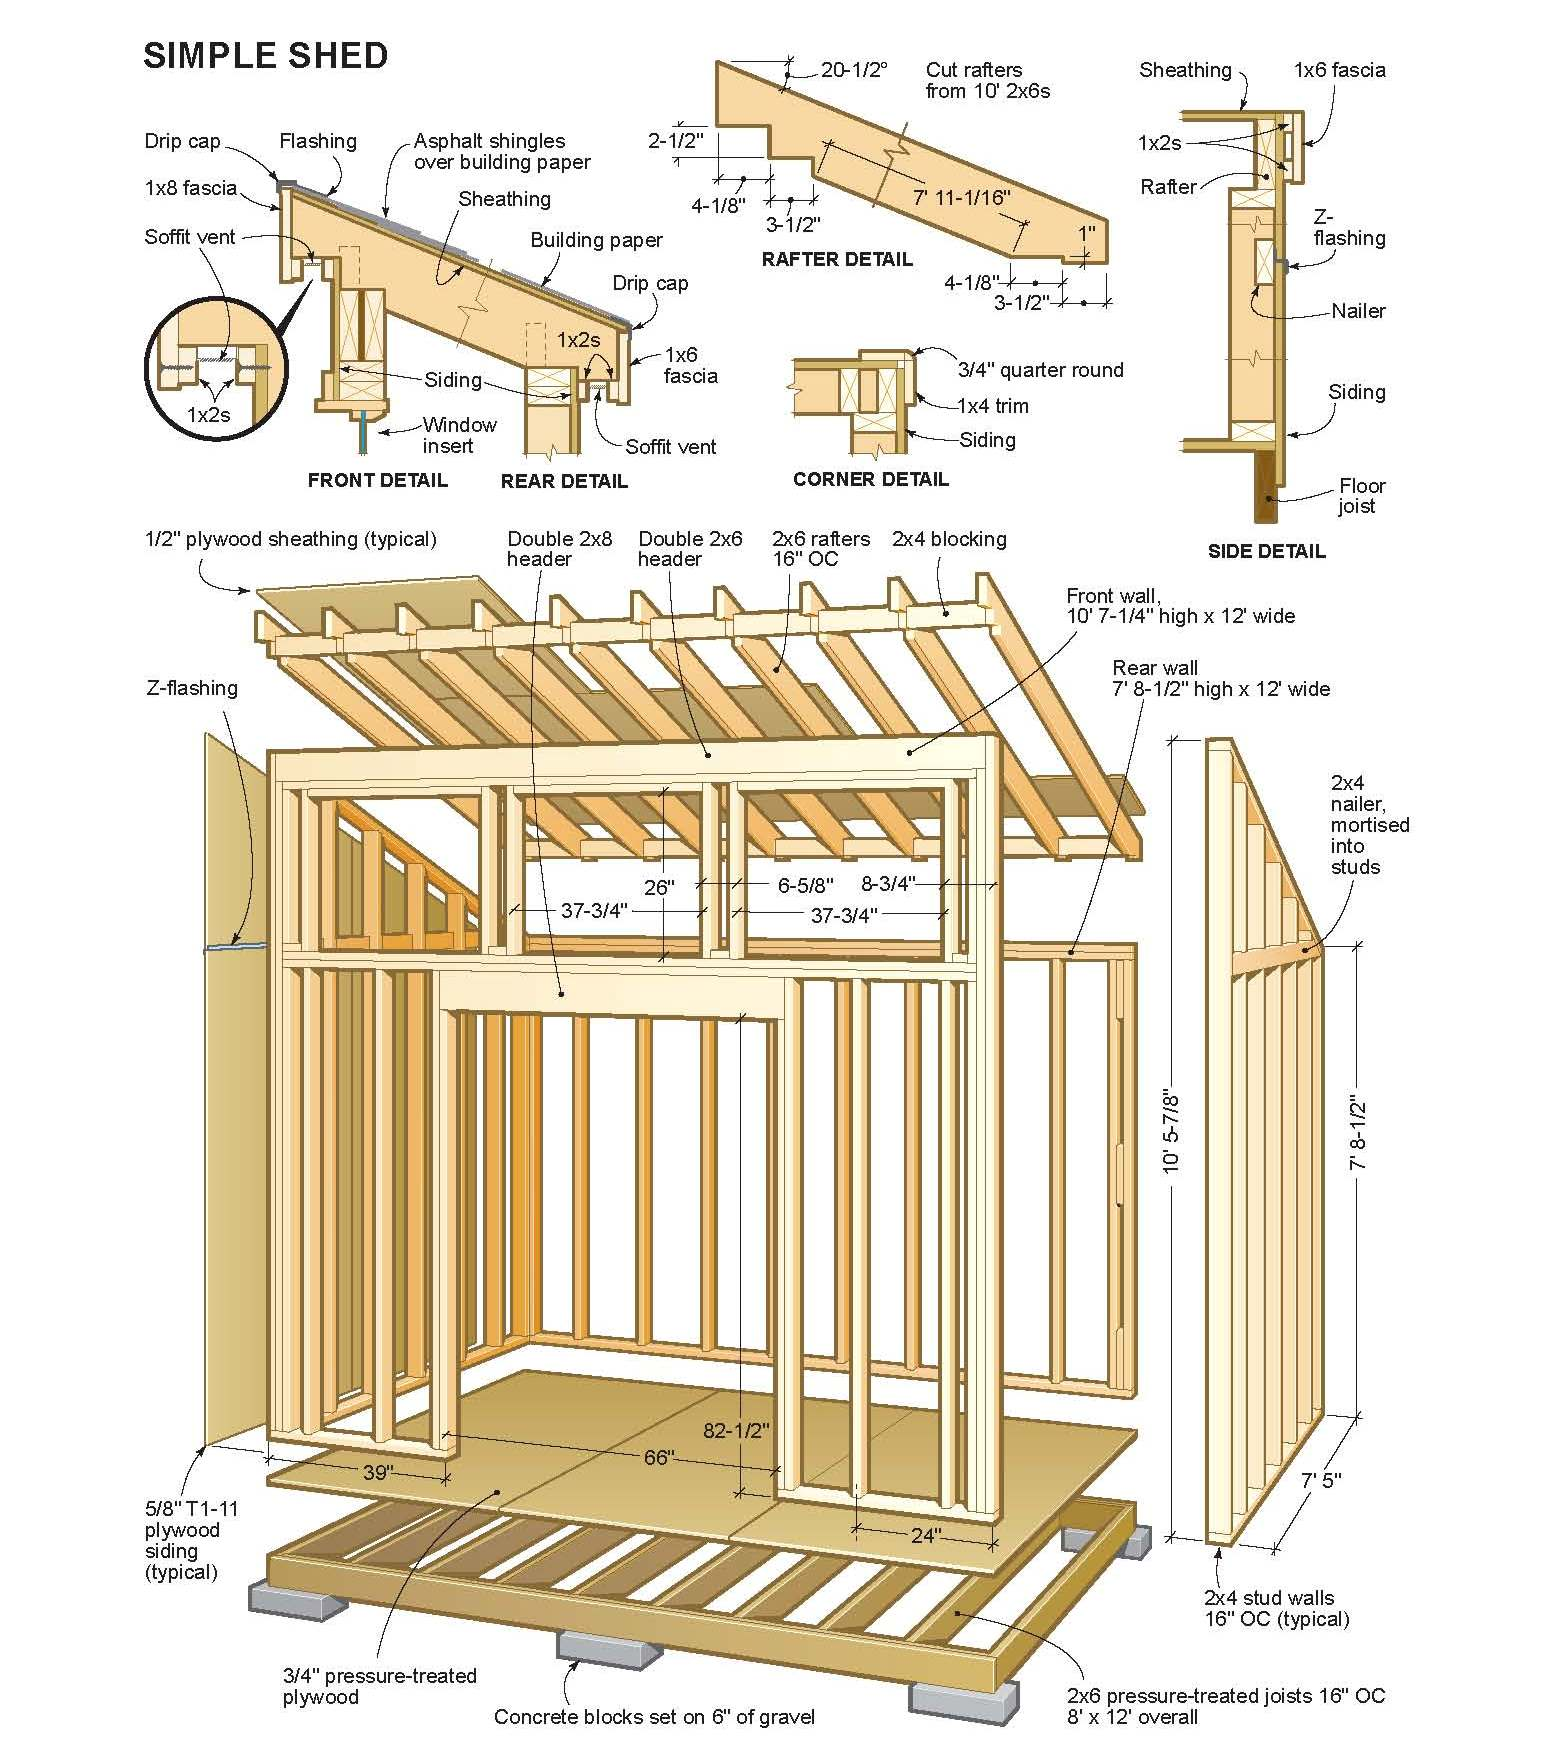 shed plans can have a variety of roof styles